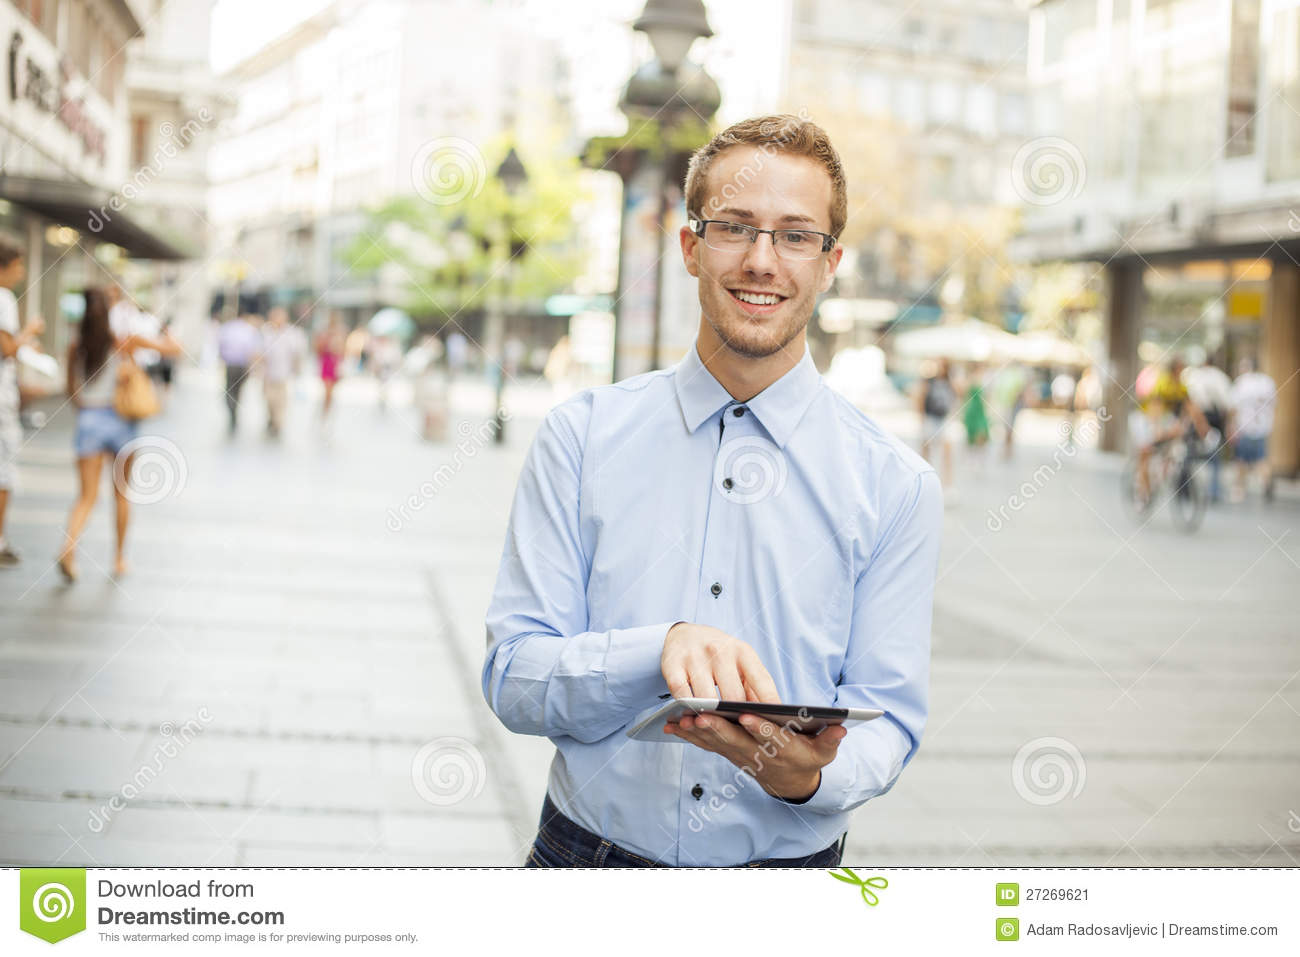 Happy Businessman with tablet walking on street